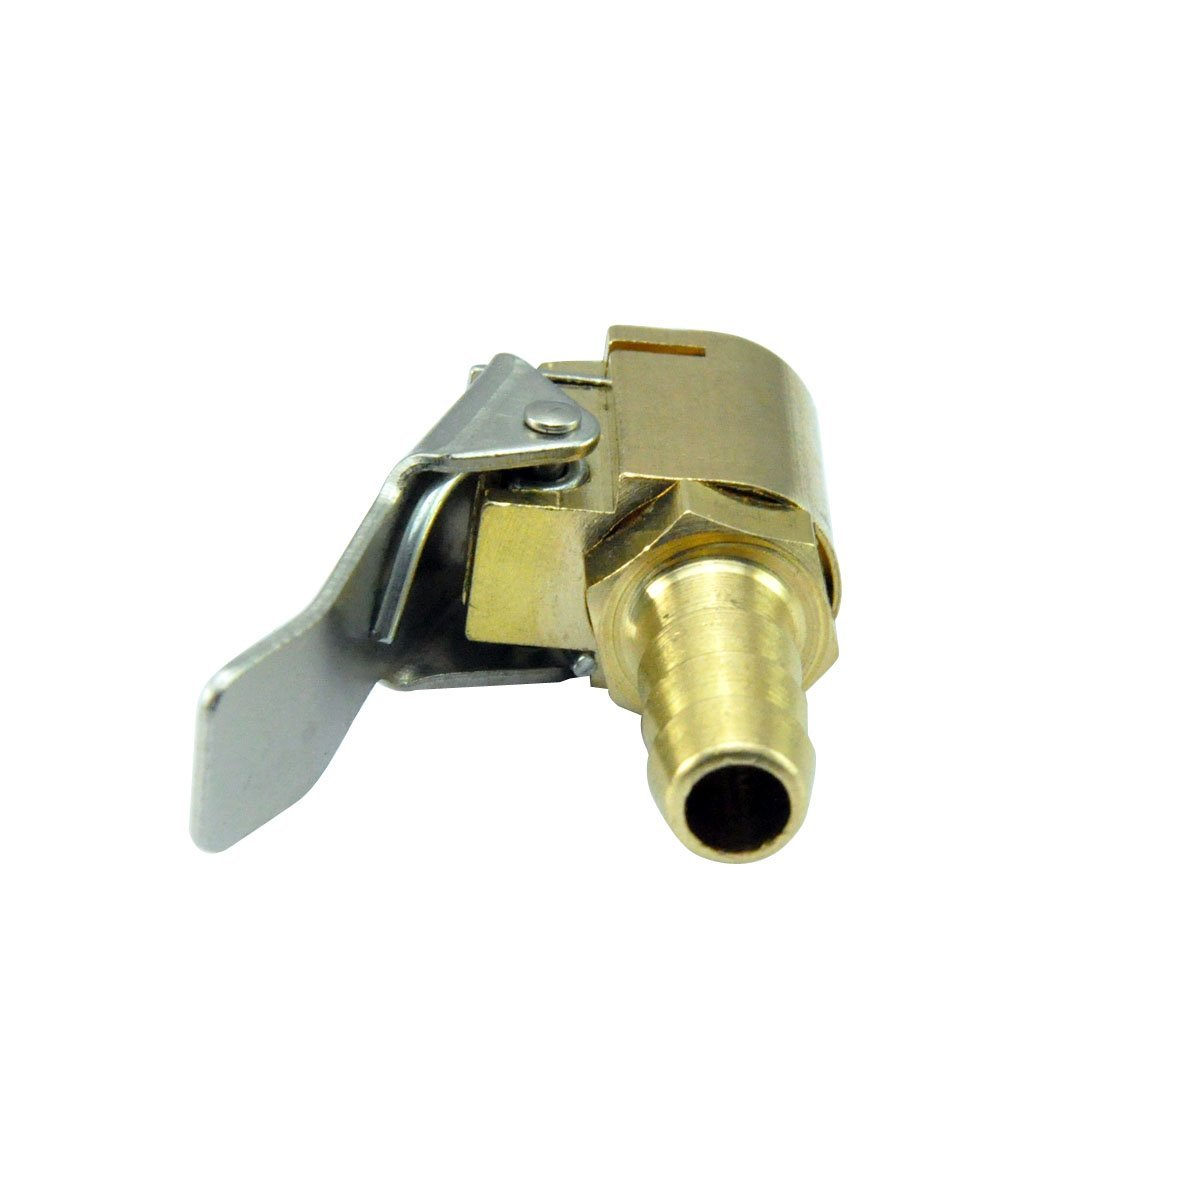 for Tire Inflator Pack of 1 AutoEC Open Flow Air Chuck with Lock